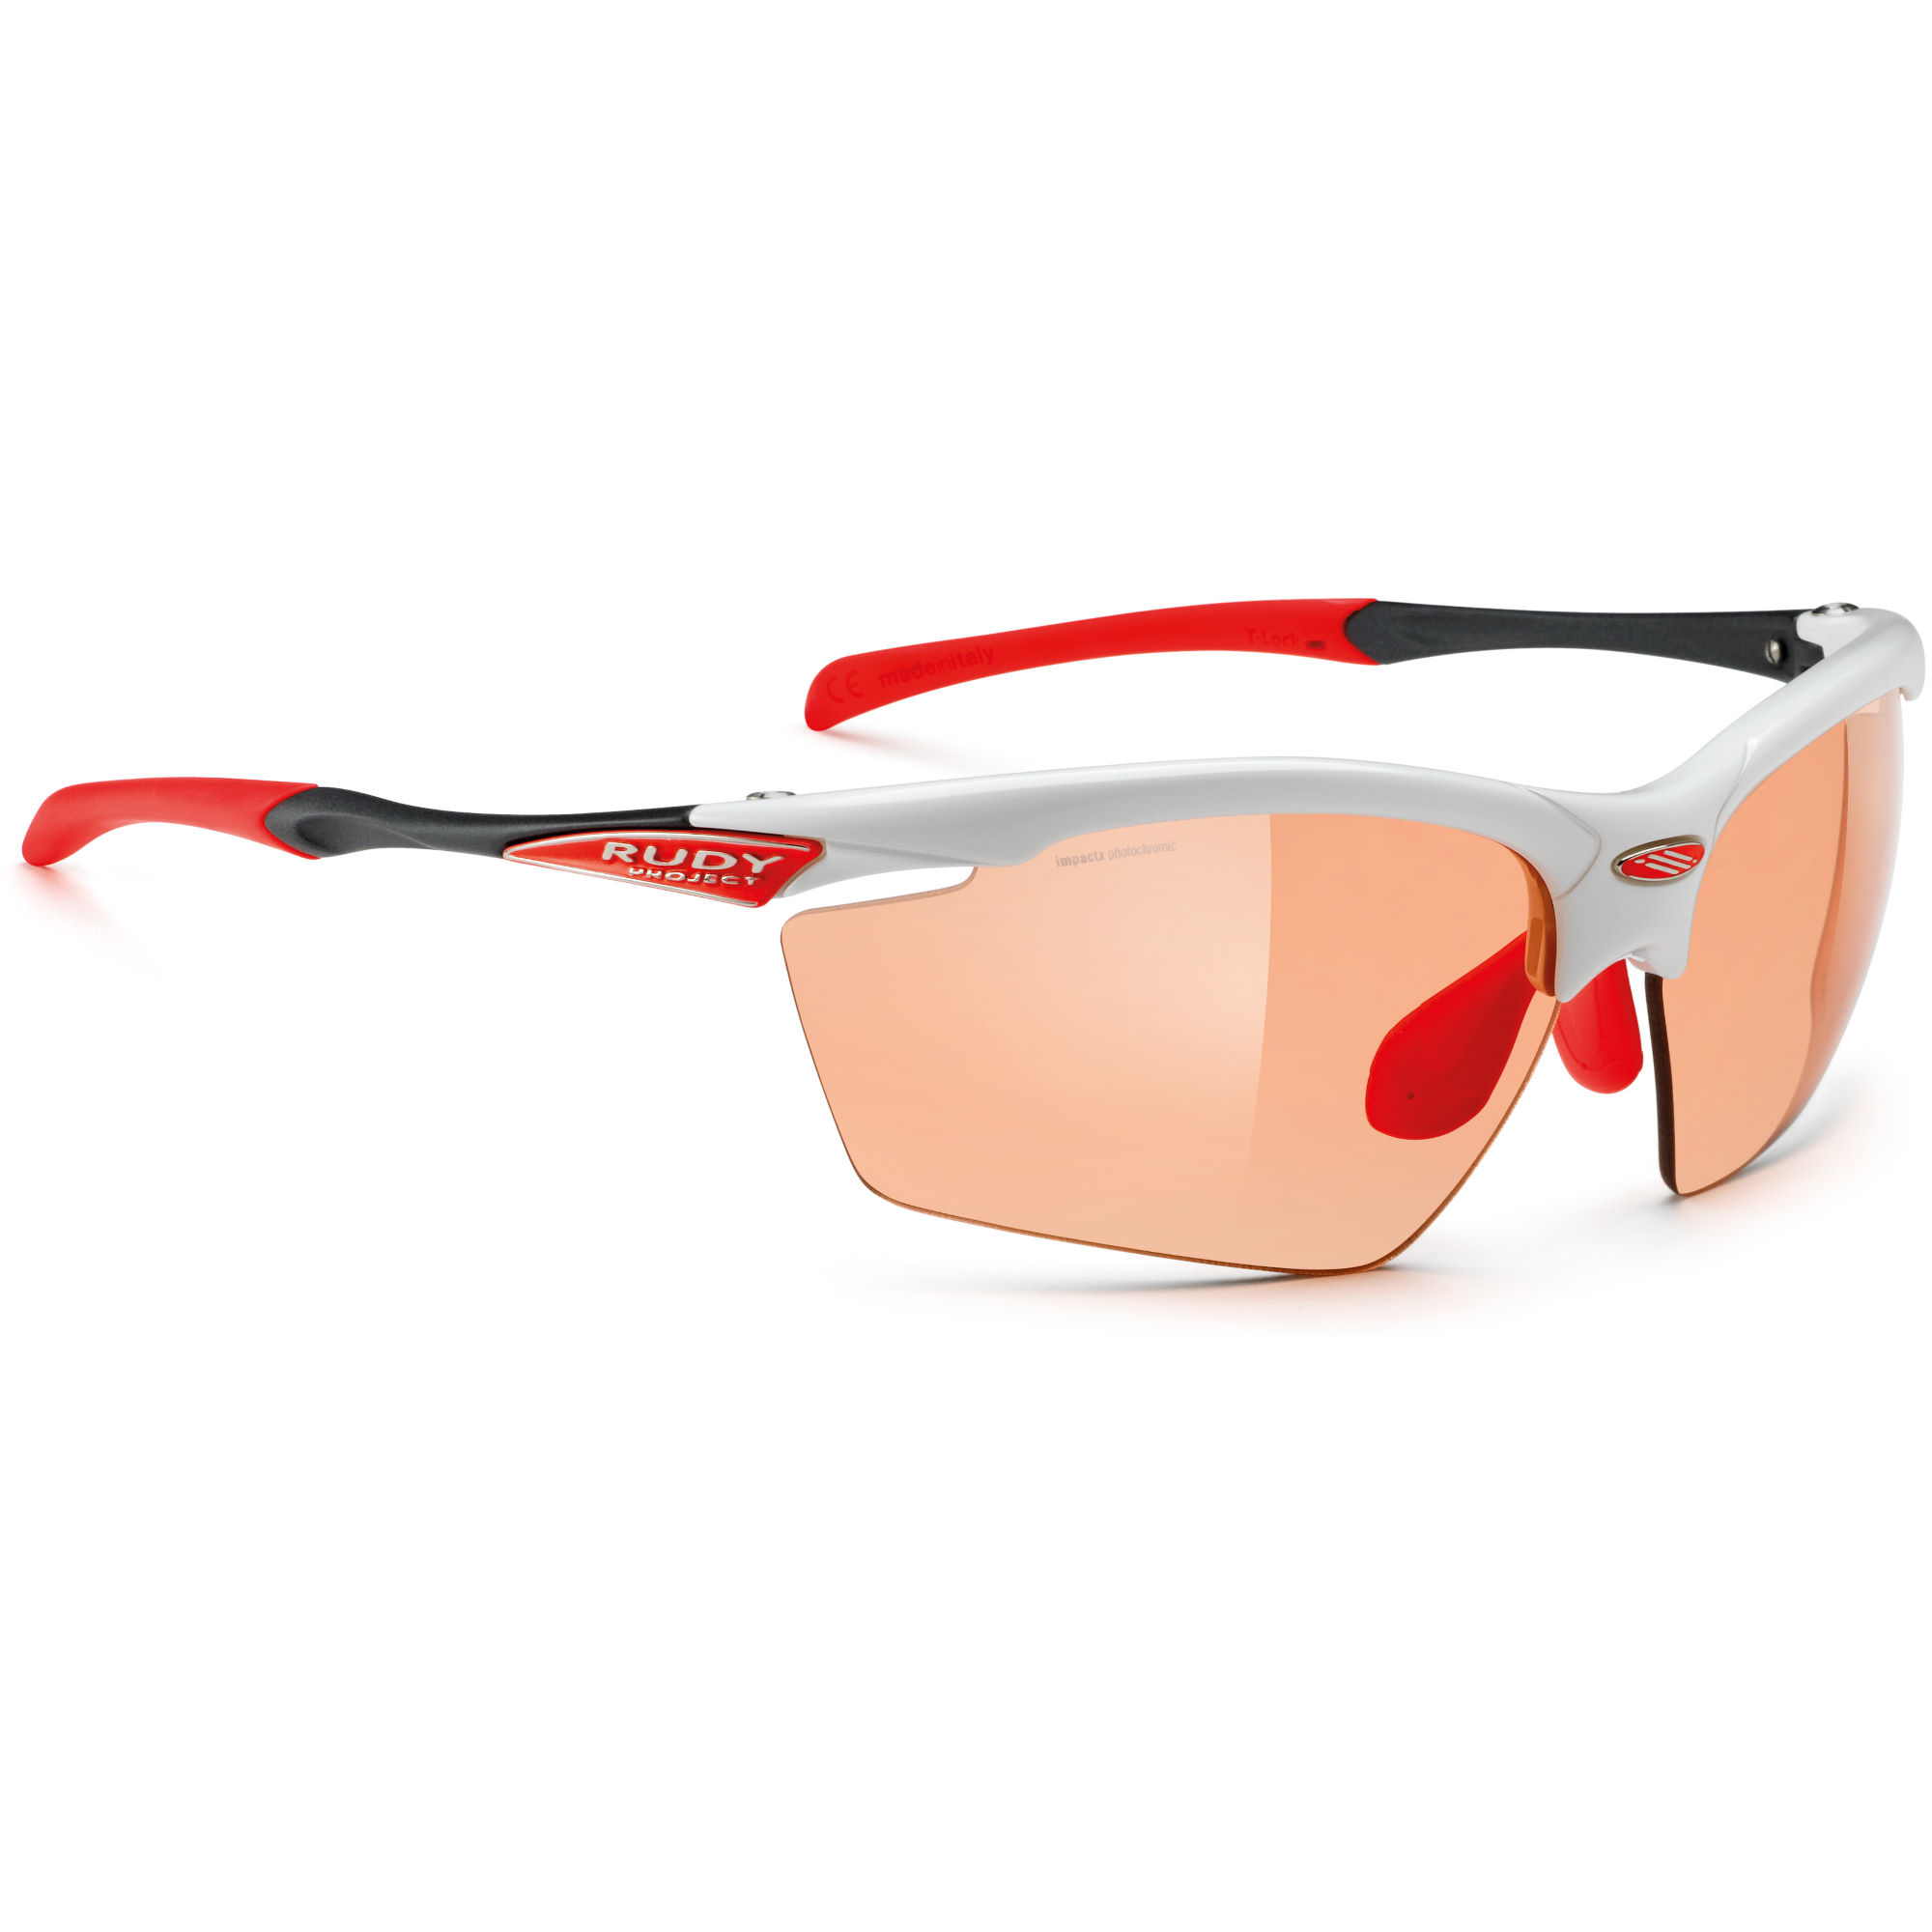 rudy project sunglasses sale Products 1 - 45 of 50  view our range of rudy project sunglasses at smartbuyglasses malaysia free  delivery & 100-day no-hassle returns on all items.